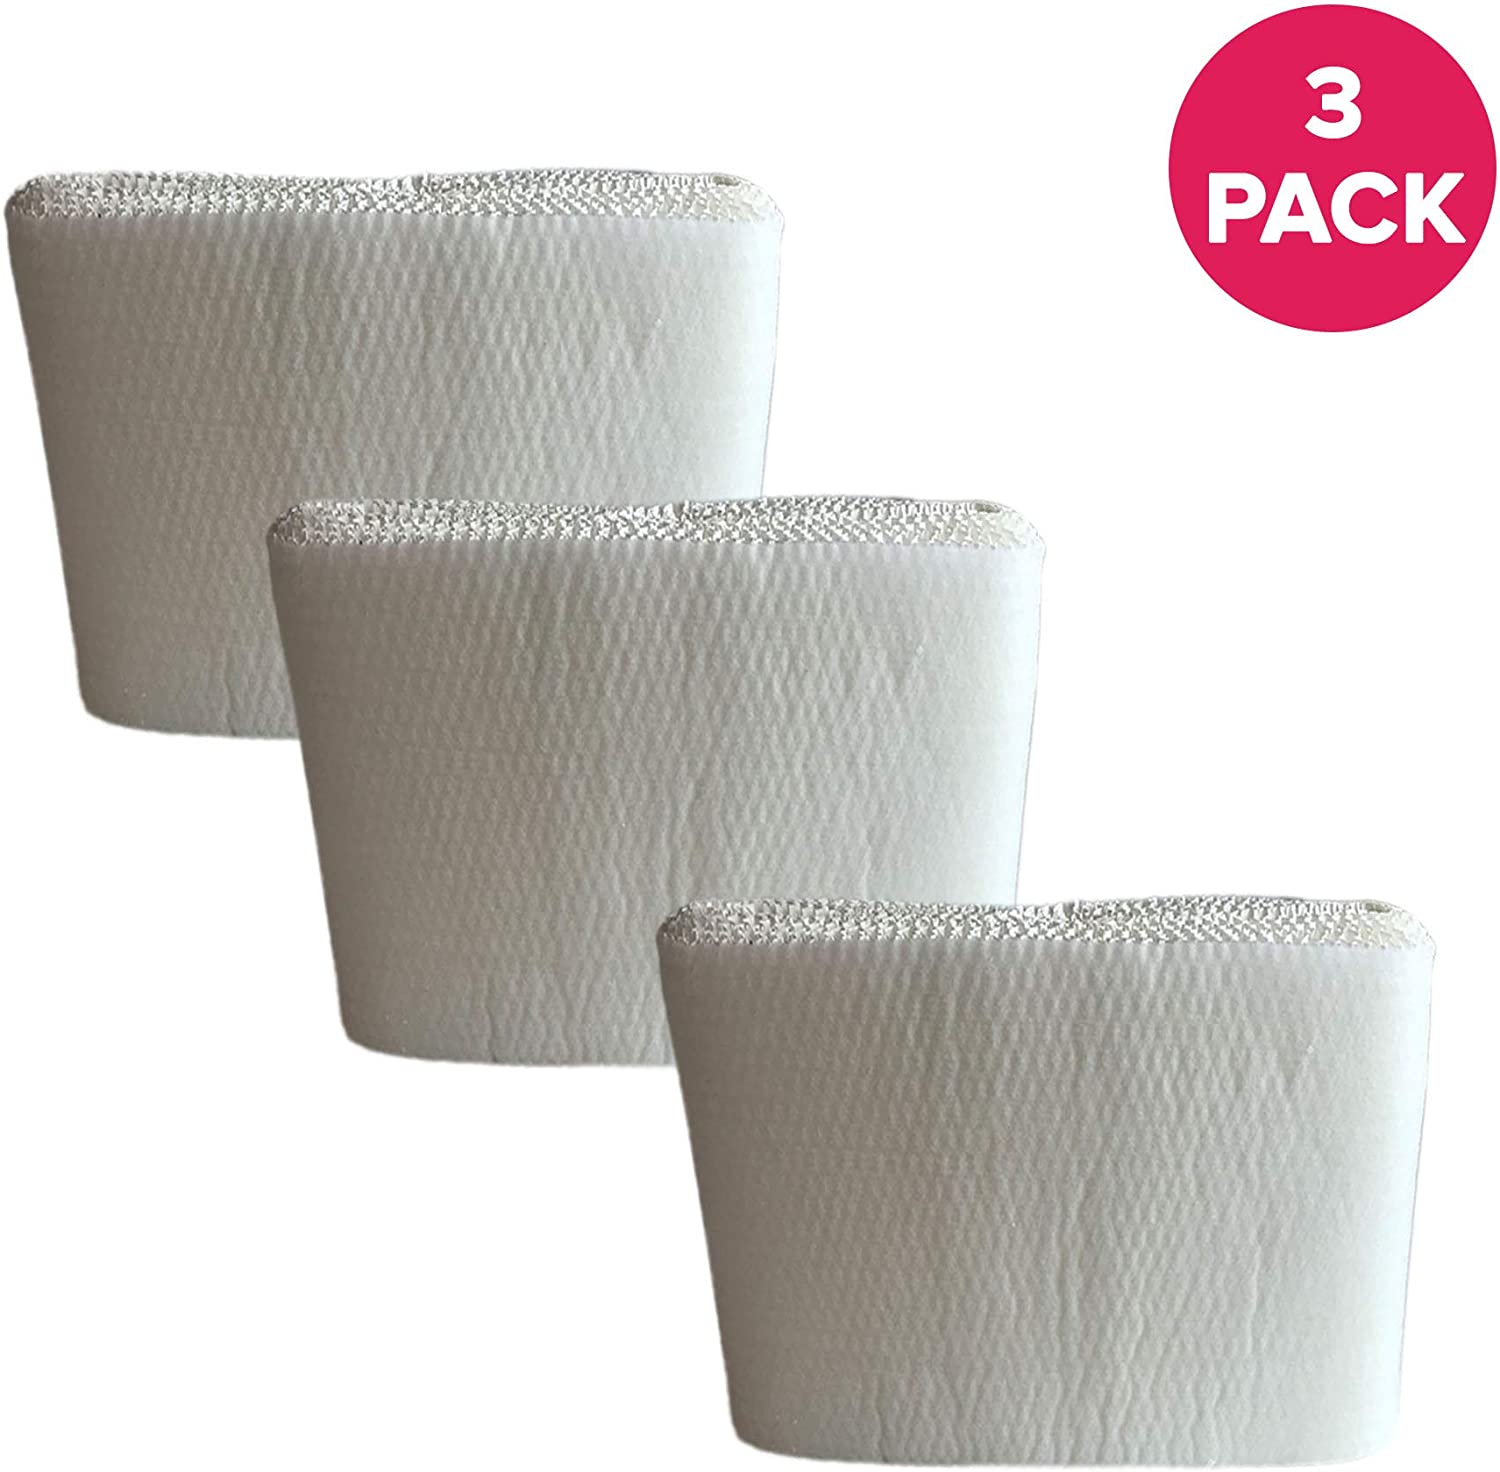 Crucial Air Replacement Humidifier Wick Filter Compatible with Honeywell Models HCM3500,HM3600,HCM-6000 Air Filters Parts # HC-14 Bulk (3 Pack)